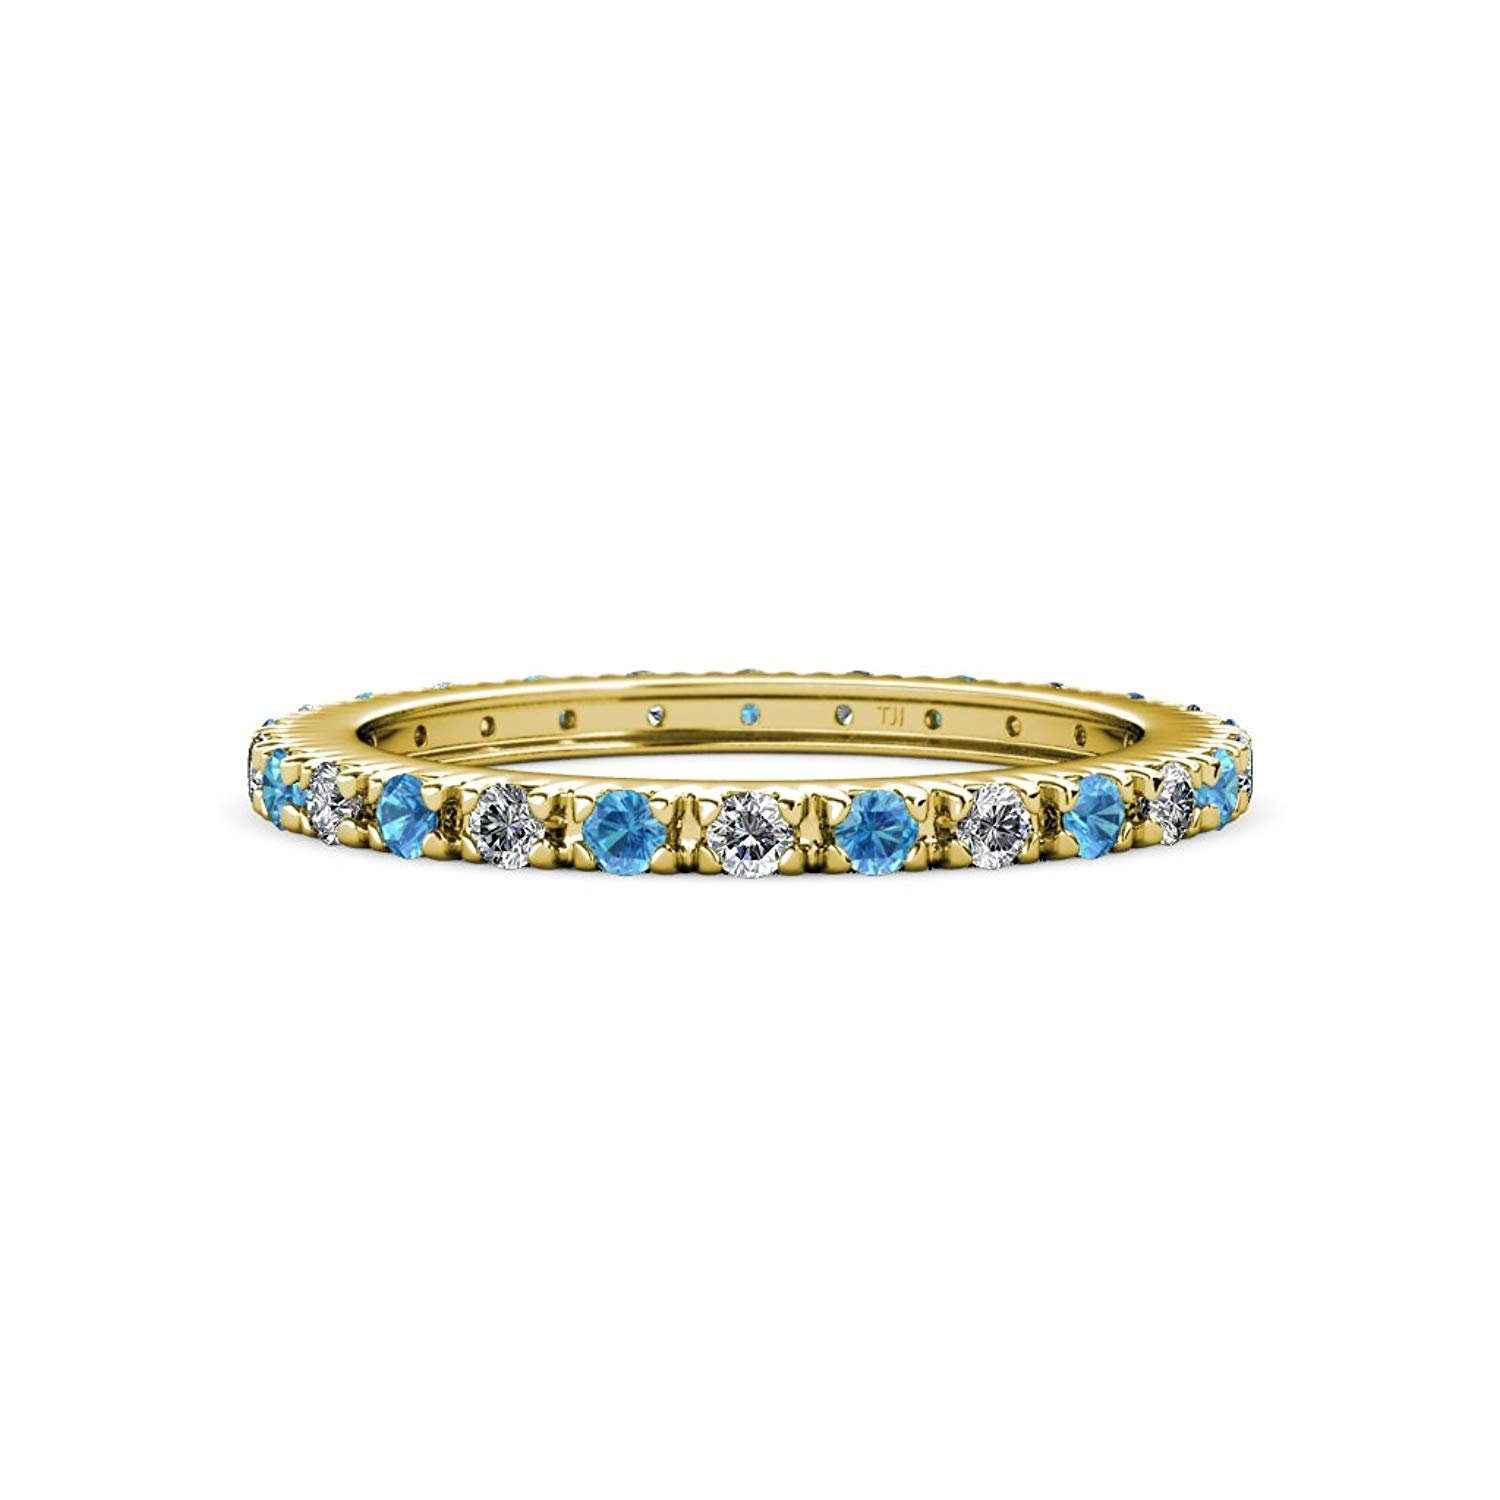 Blue Topaz and Diamond French Set Eternity Band 0.75 ct tw to 0.91 ct tw in 14K Yellow Gold.size 7.5 by TriJewels